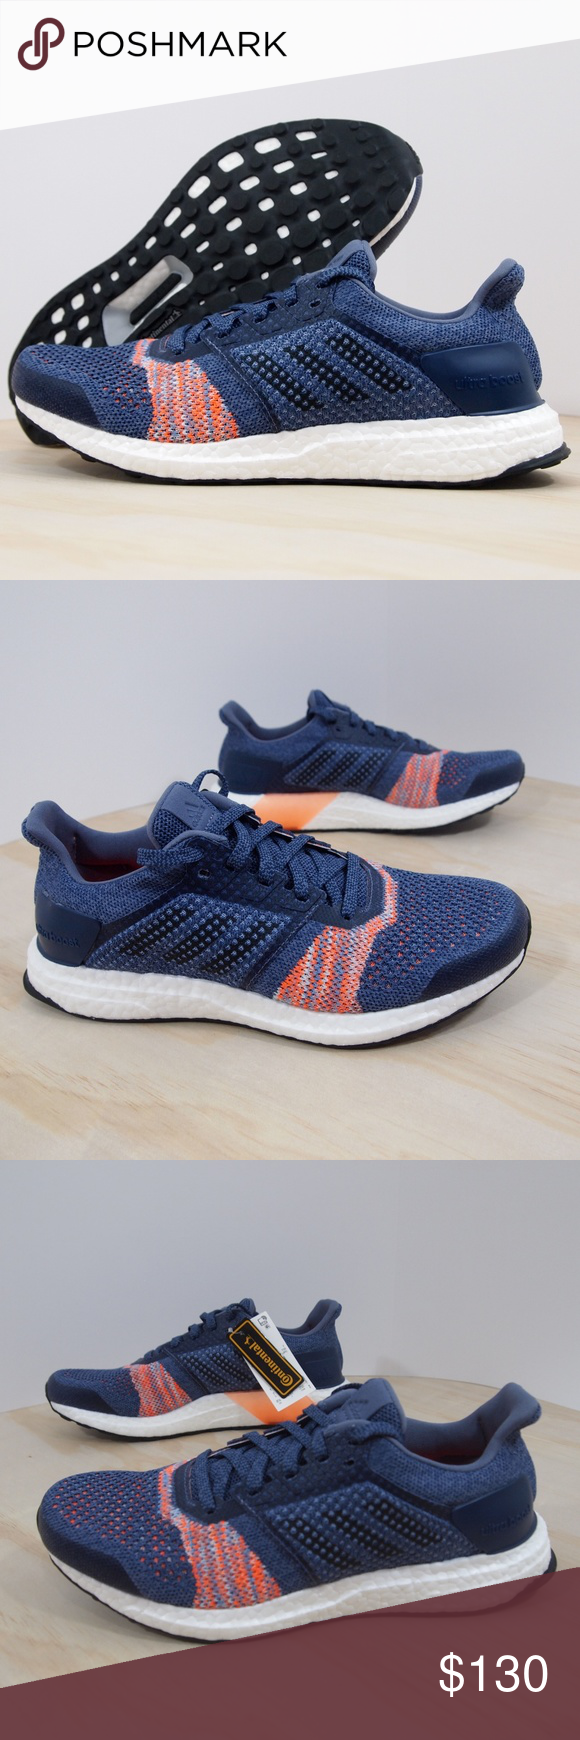 97b751b0aaaa7 Adidas Womens Ultra Boost ST Size 8.5 Indigo New 100% Authentic. New  without box. adidas Women s Ultra Boost ST Color  Raw Indigo